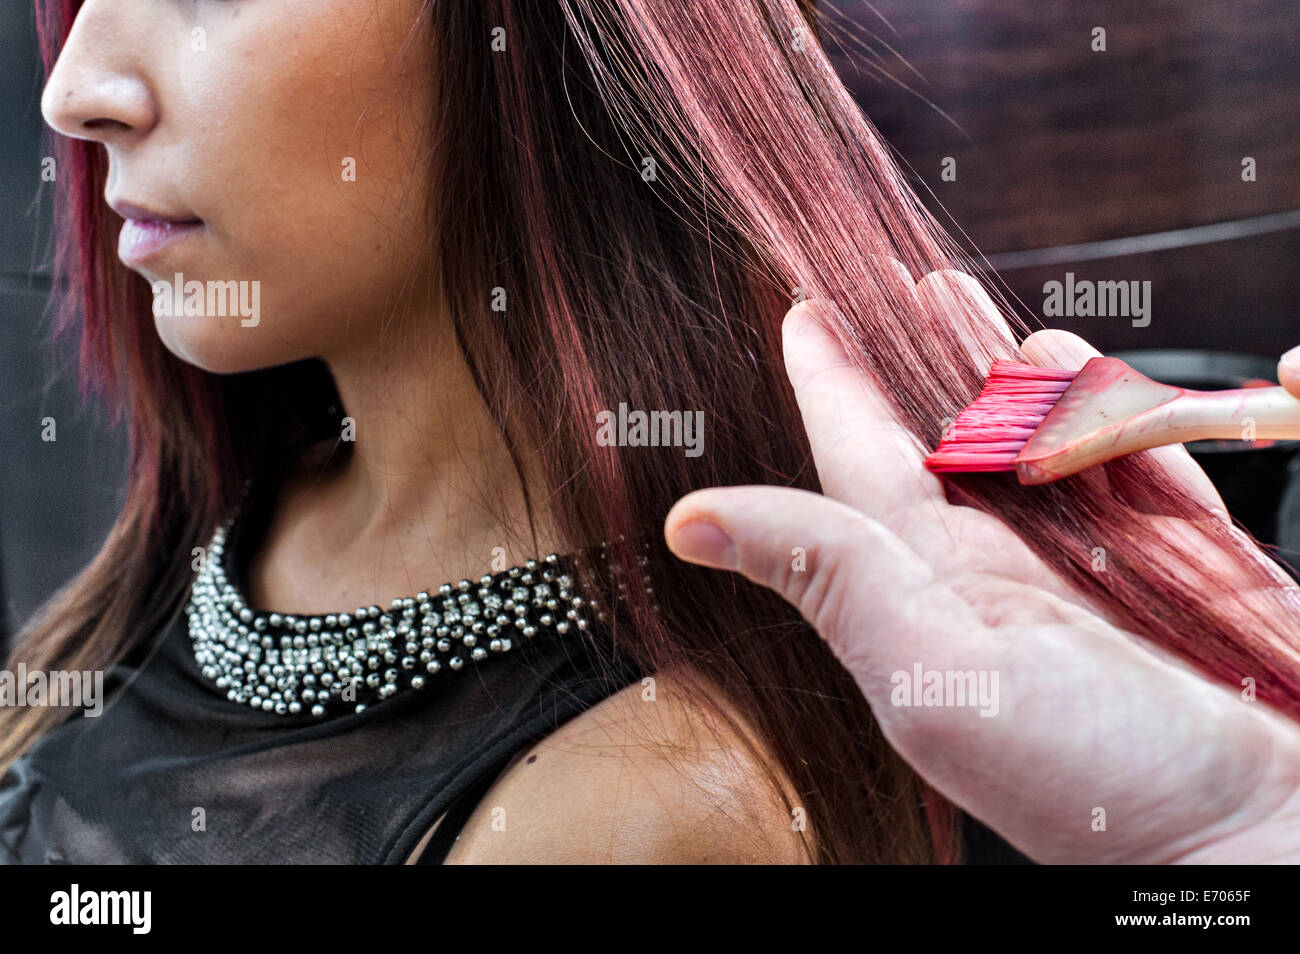 Male hairdresser dyeing young woman's hair pink color in hair salon - Stock Image